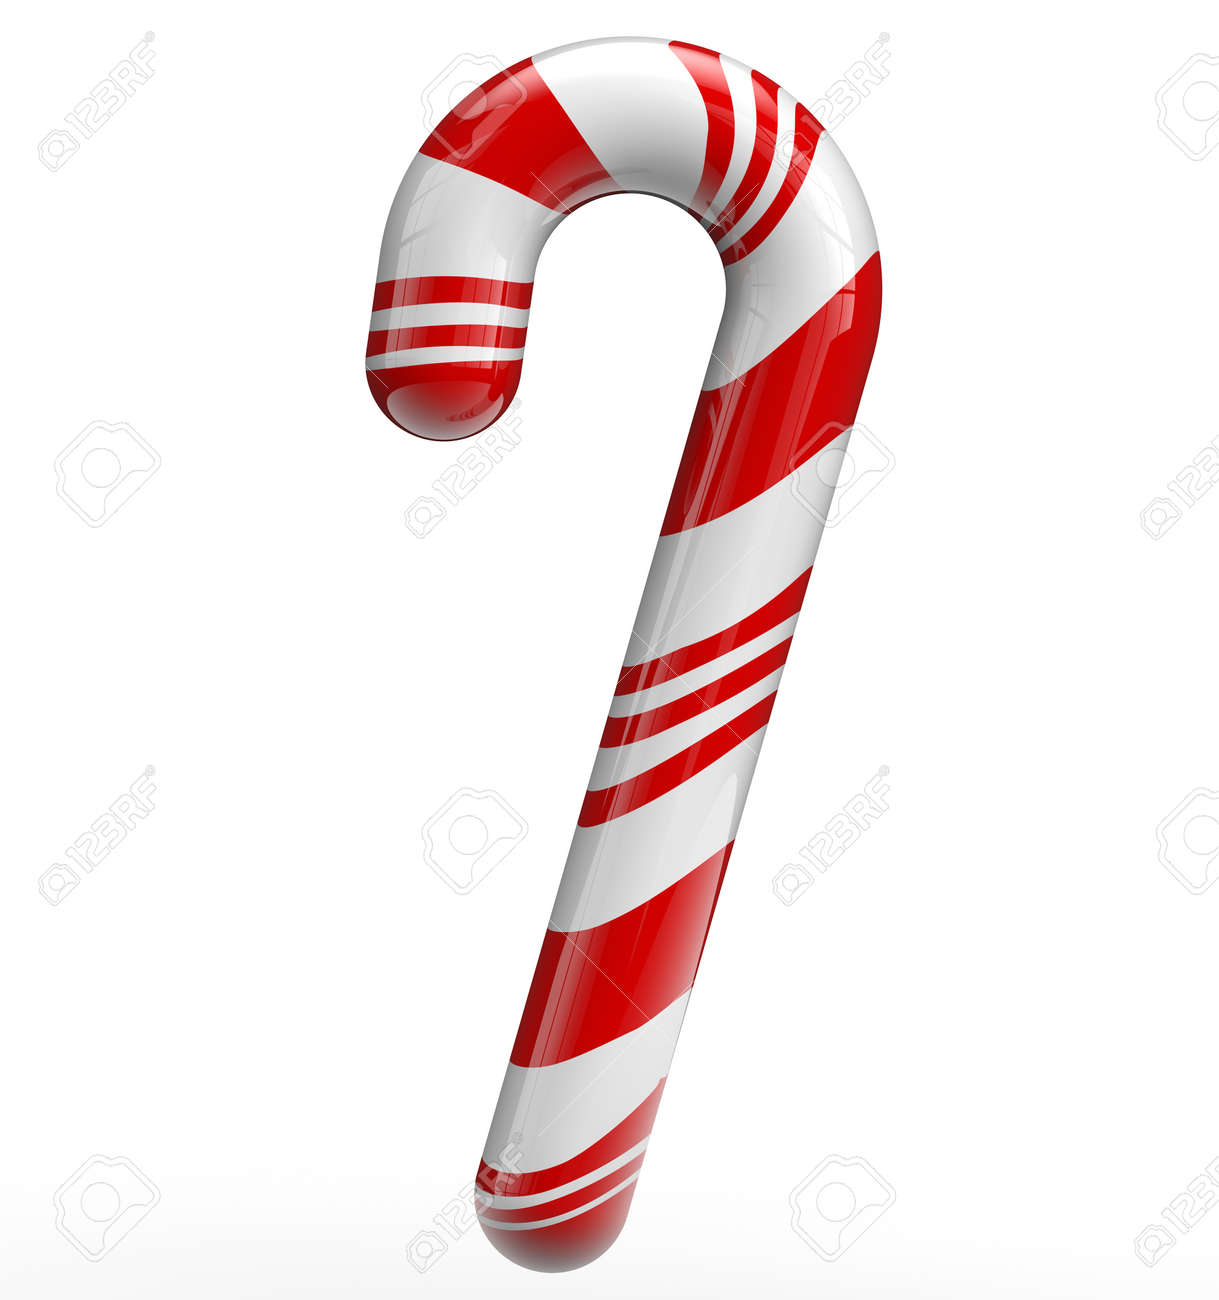 Christmas candy cane isolated on white. - 33143520